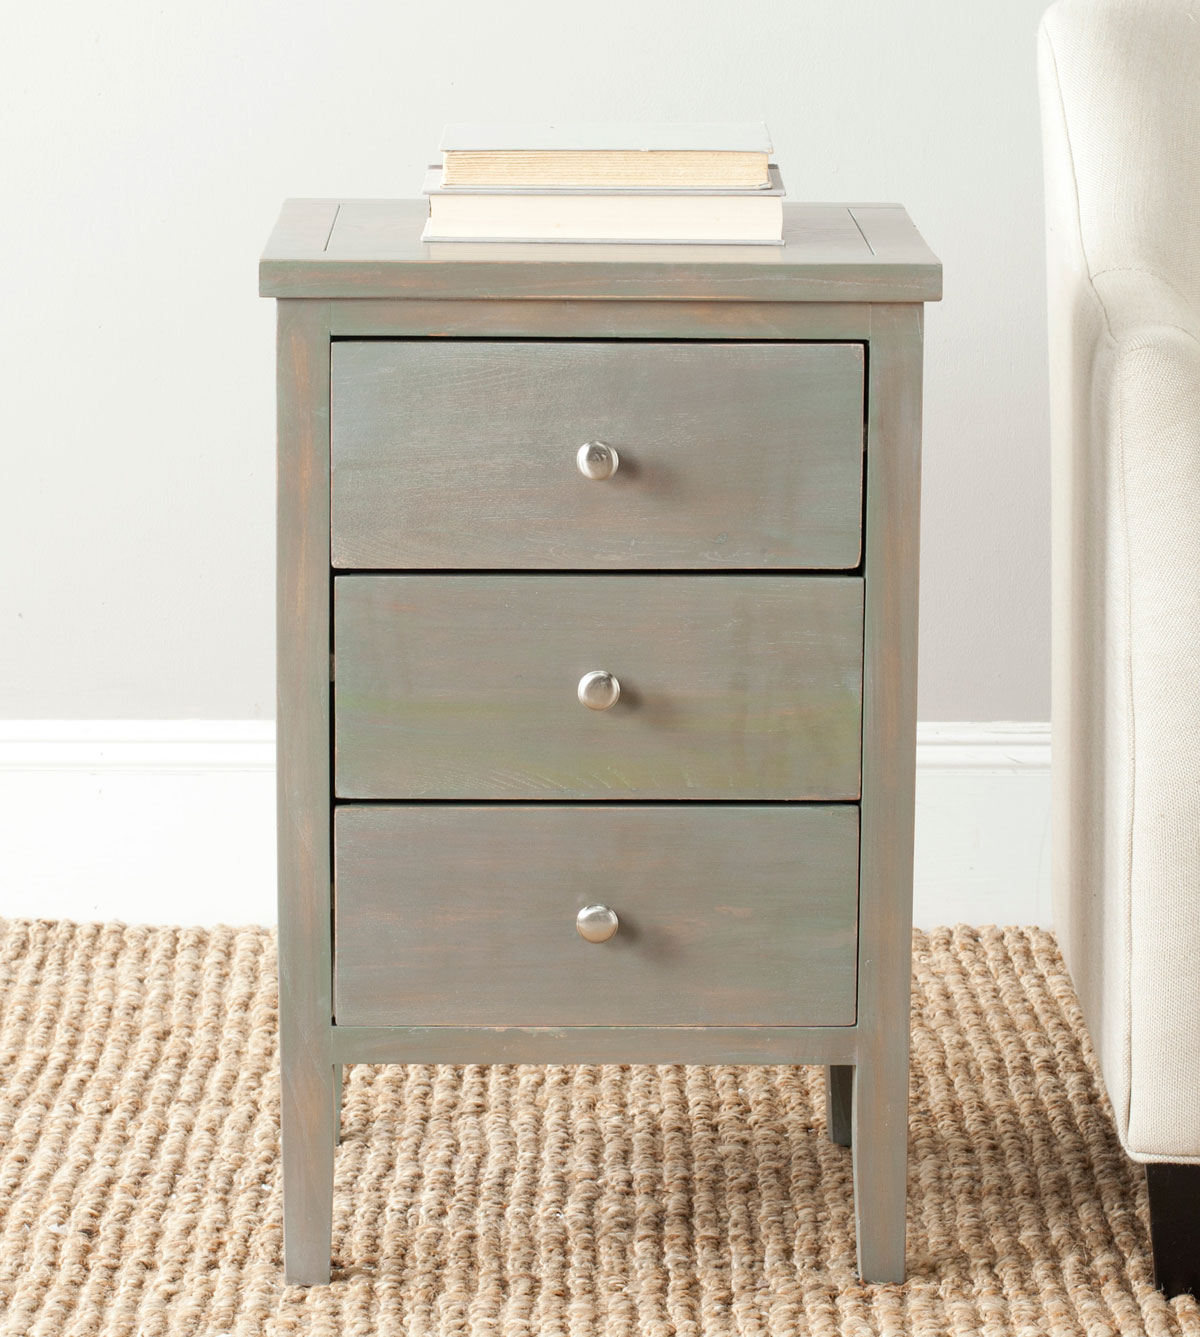 accent tables storage furniture safavieh room drawer table target deniz end with drawers design white bedside cabinets light shade canadian tire patio sets oil rubbed bronze spray